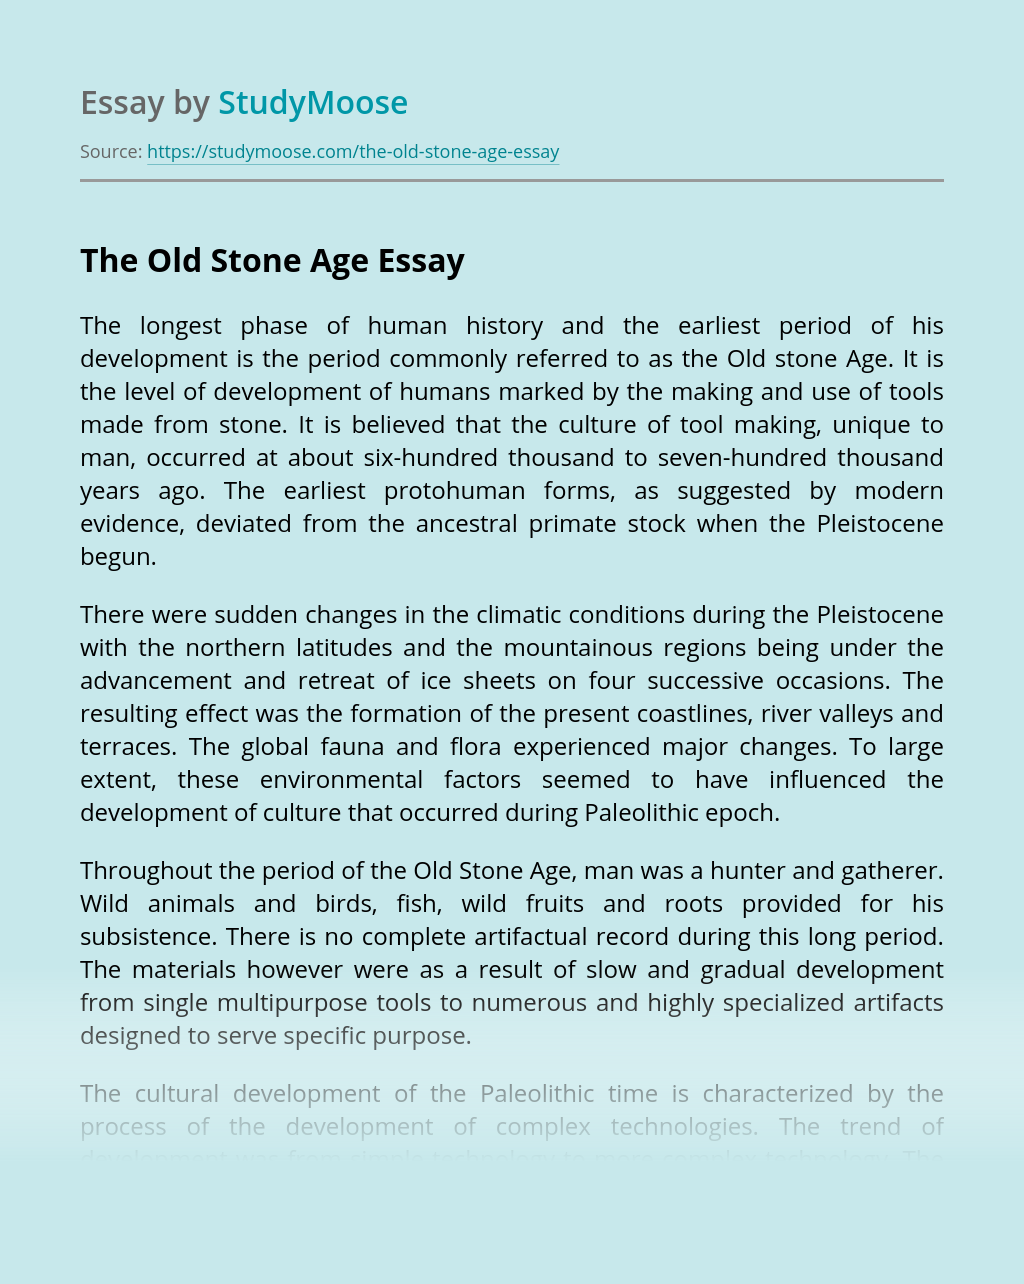 The Old Stone Age